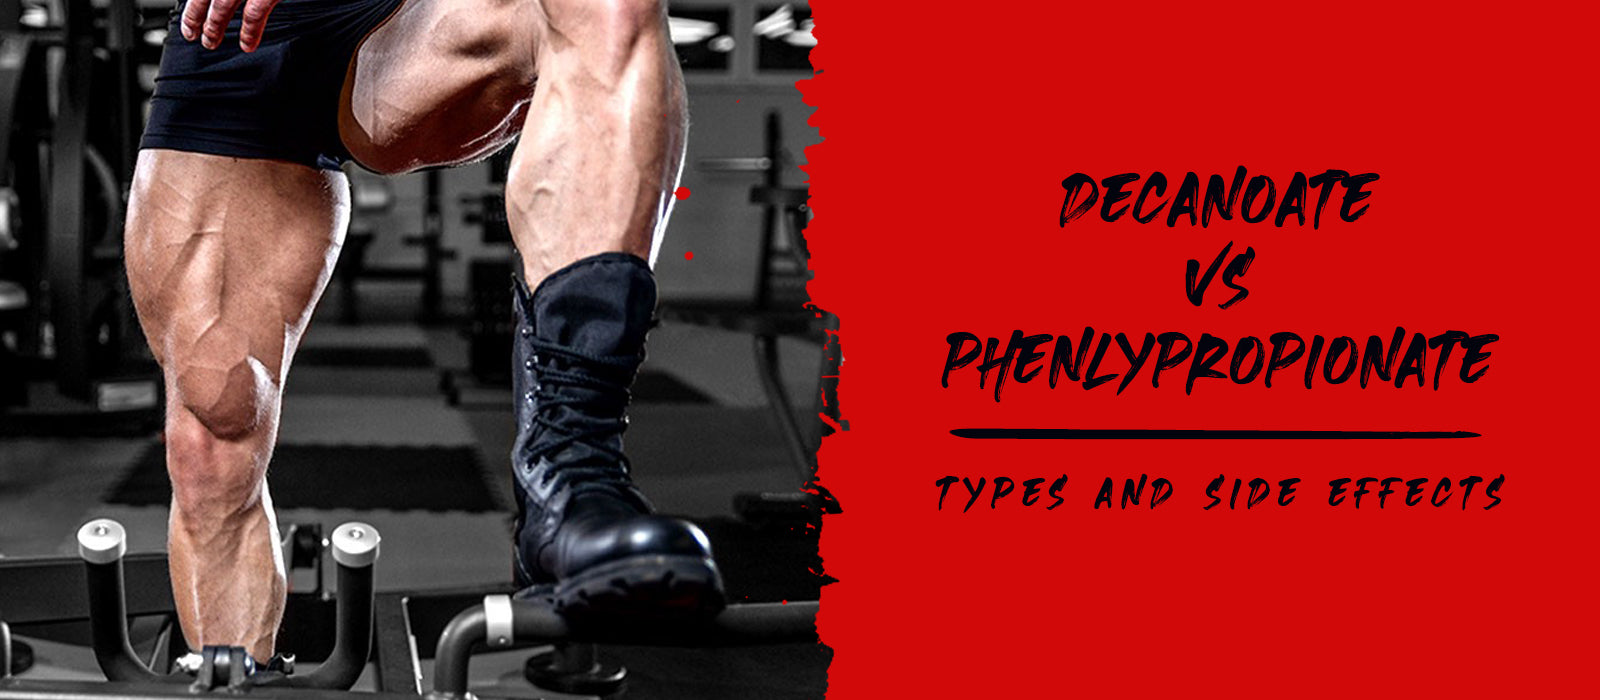 Decanoate vs Phenlypropionate: Types And Side Effects